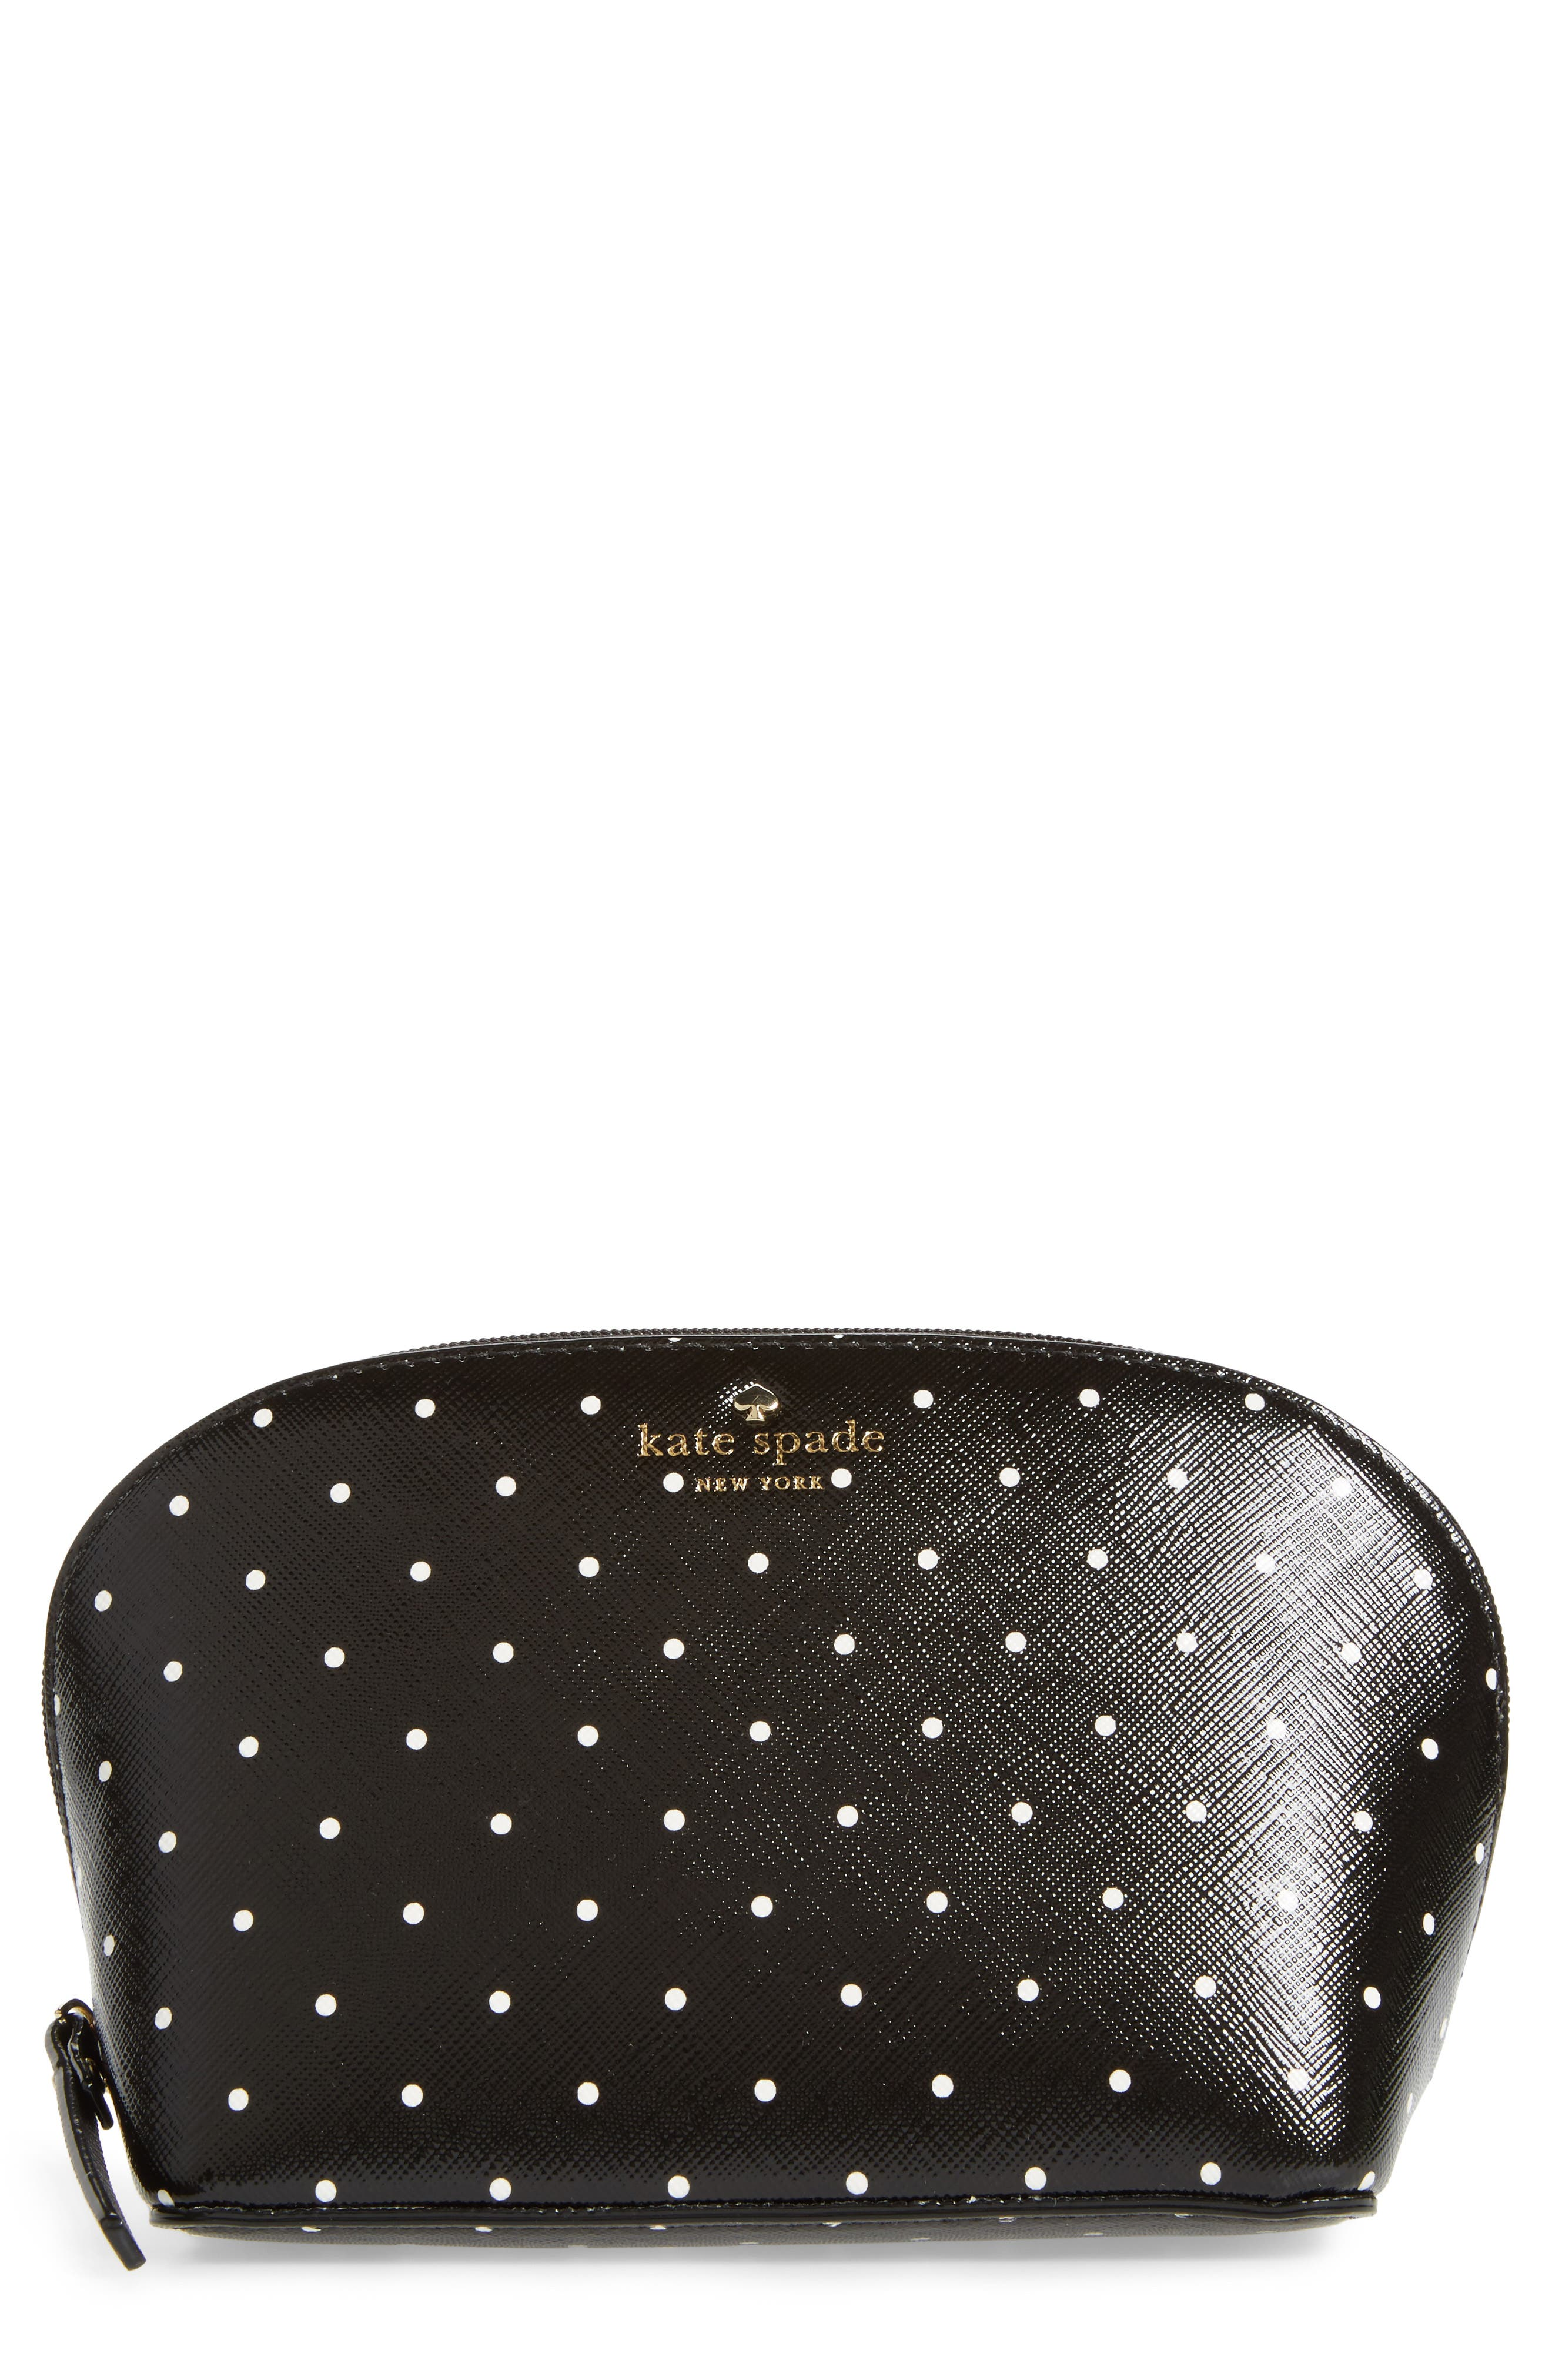 brooks drive - small abalene faux leather pouch,                         Main,                         color, Black/ Cream